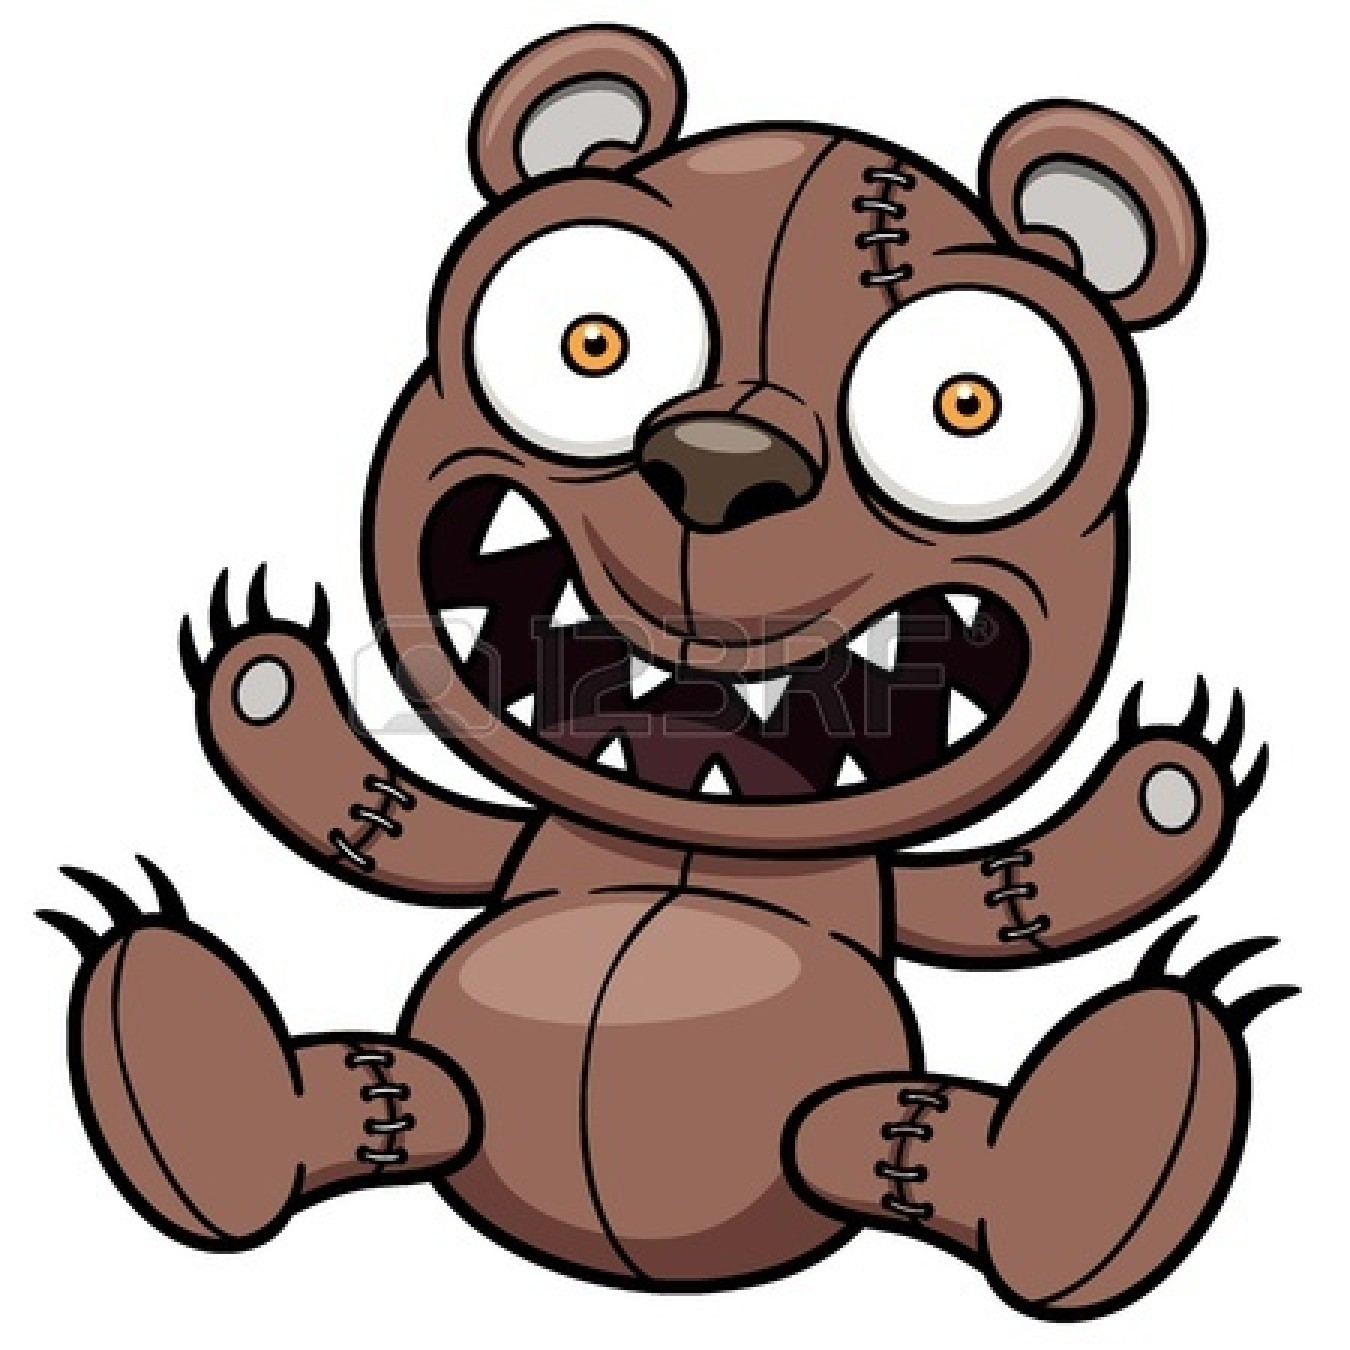 Scared bear clipart graphic transparent library Free Scared Bear Cliparts, Download Free Clip Art, Free Clip ... graphic transparent library